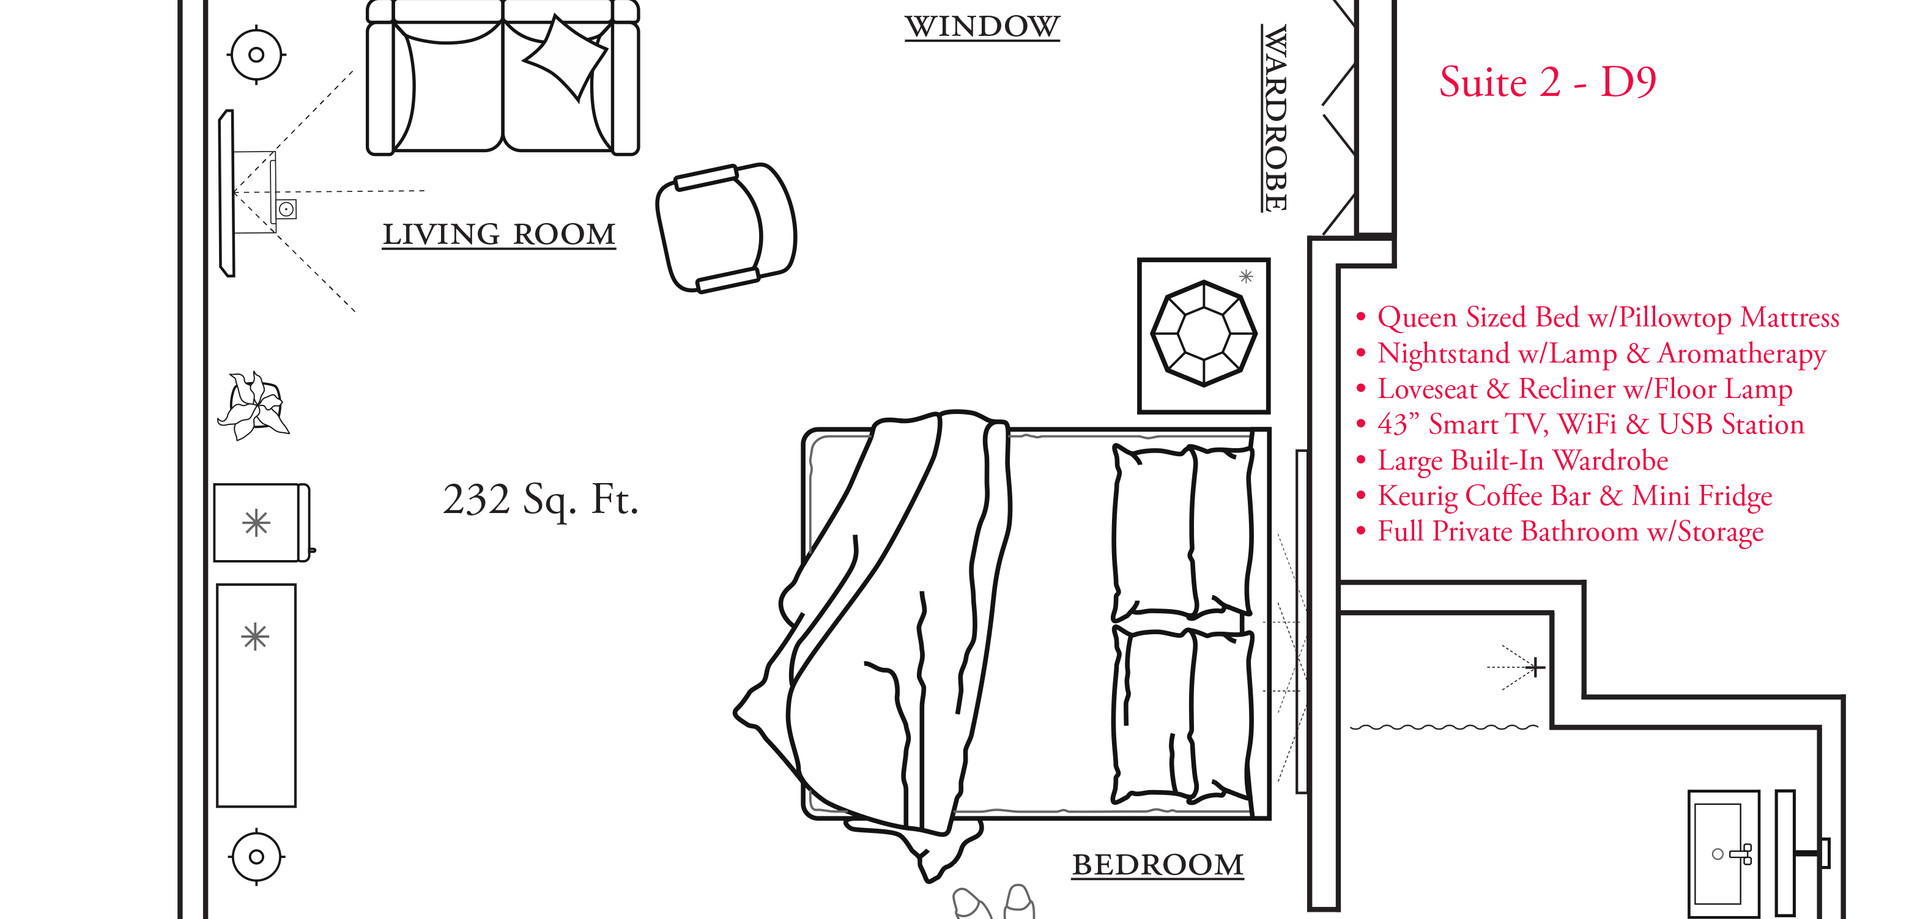 Suite Life Assisted Living Floor Plan